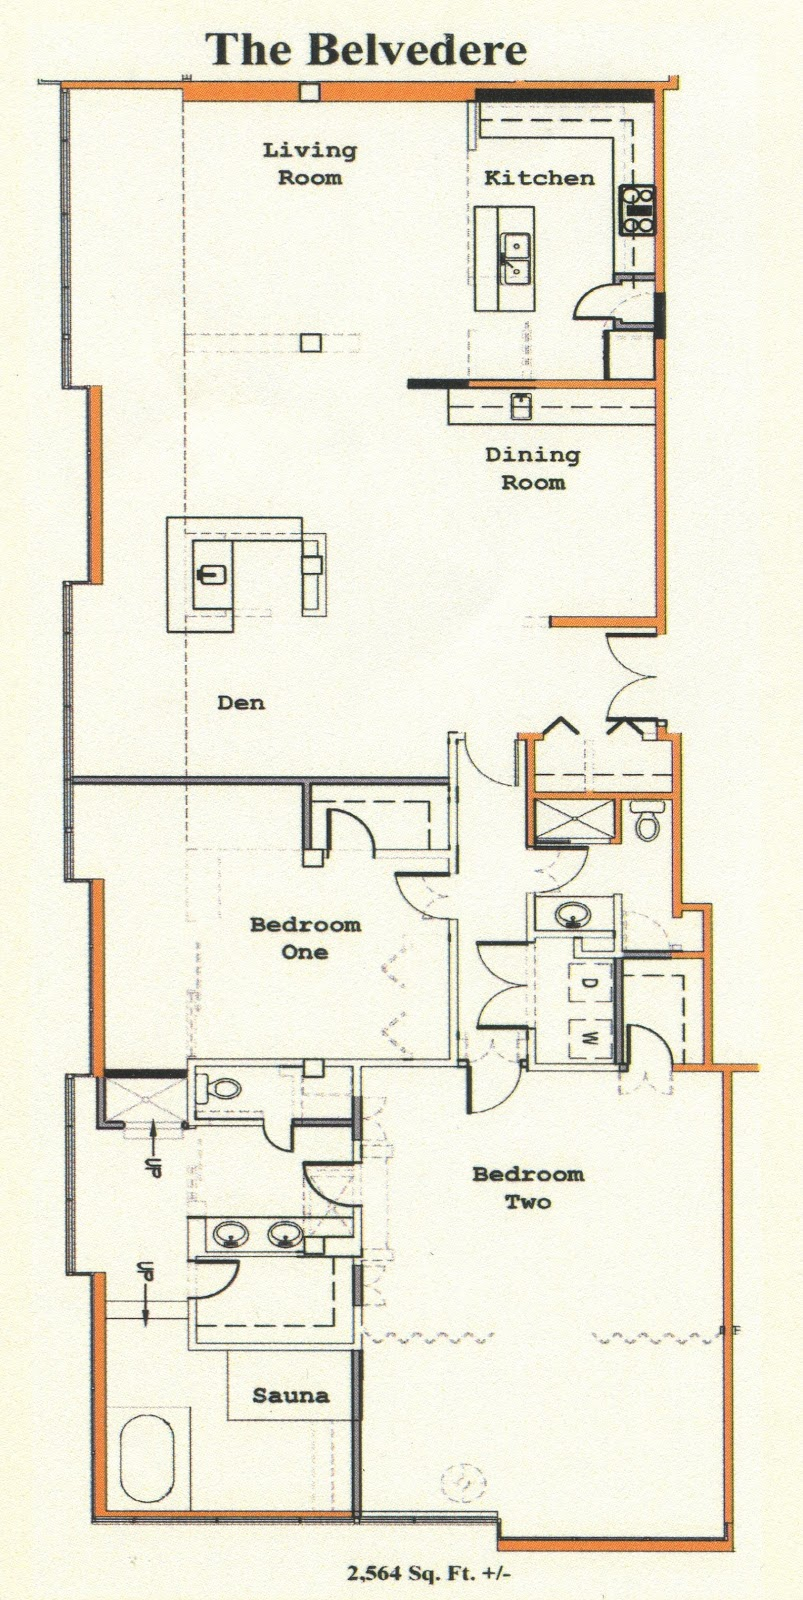 2 Bedroom Apartment Building Floor Plans